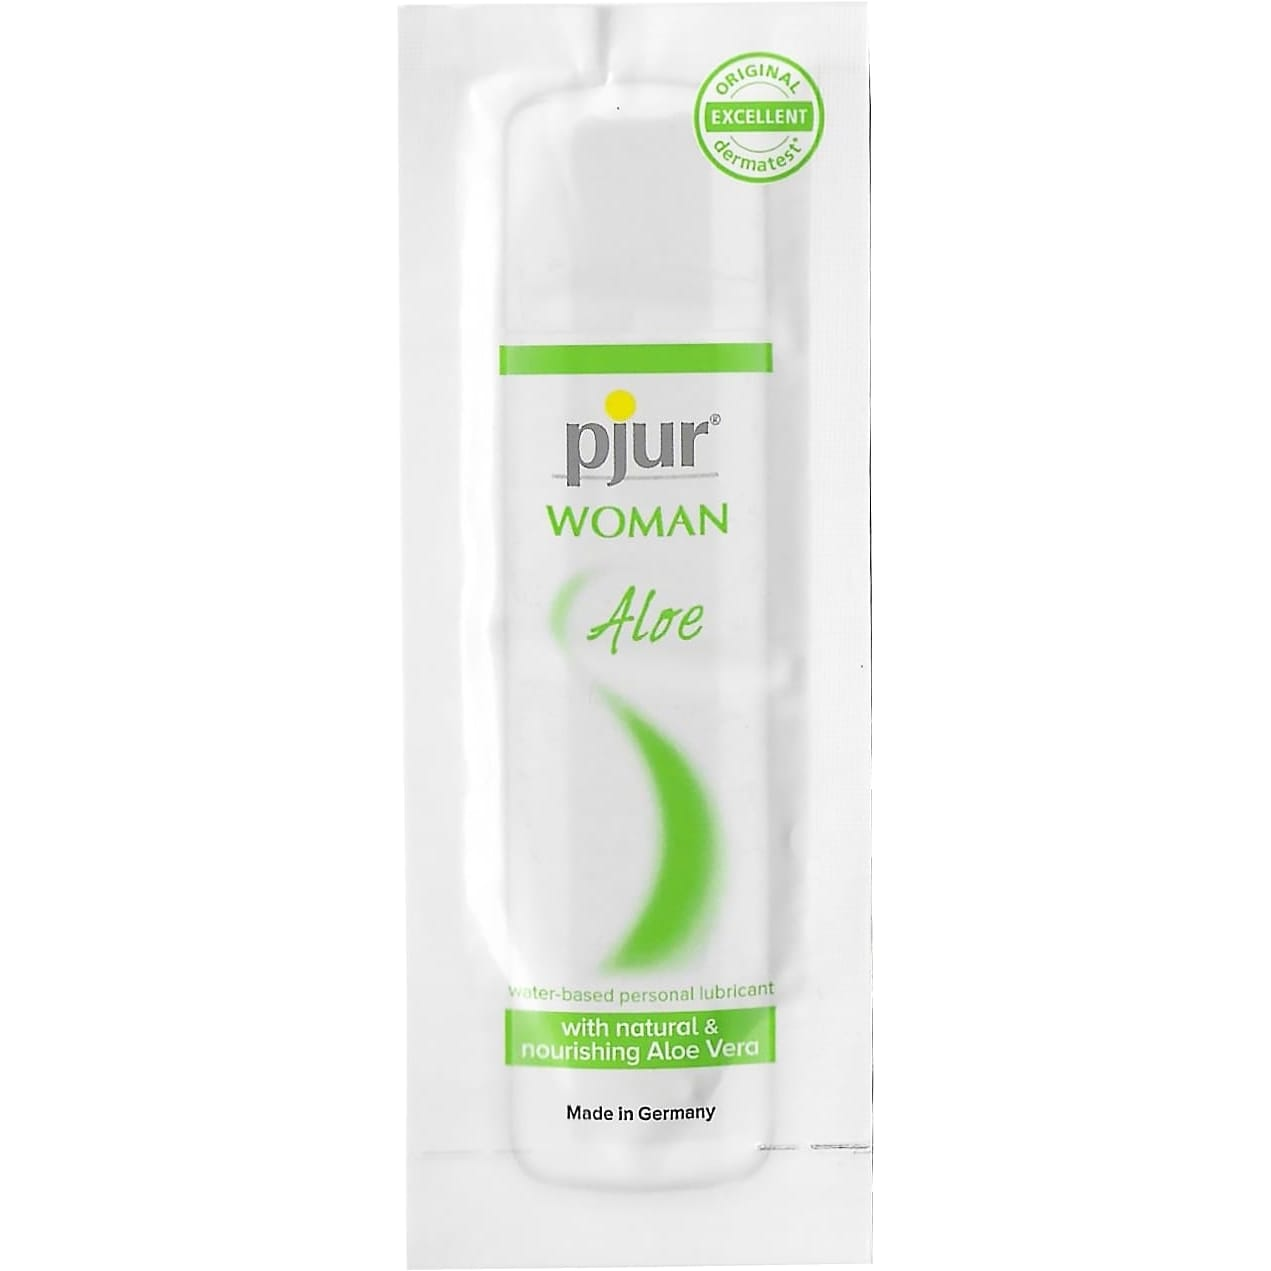 Pjur Woman Aloe 2 ml